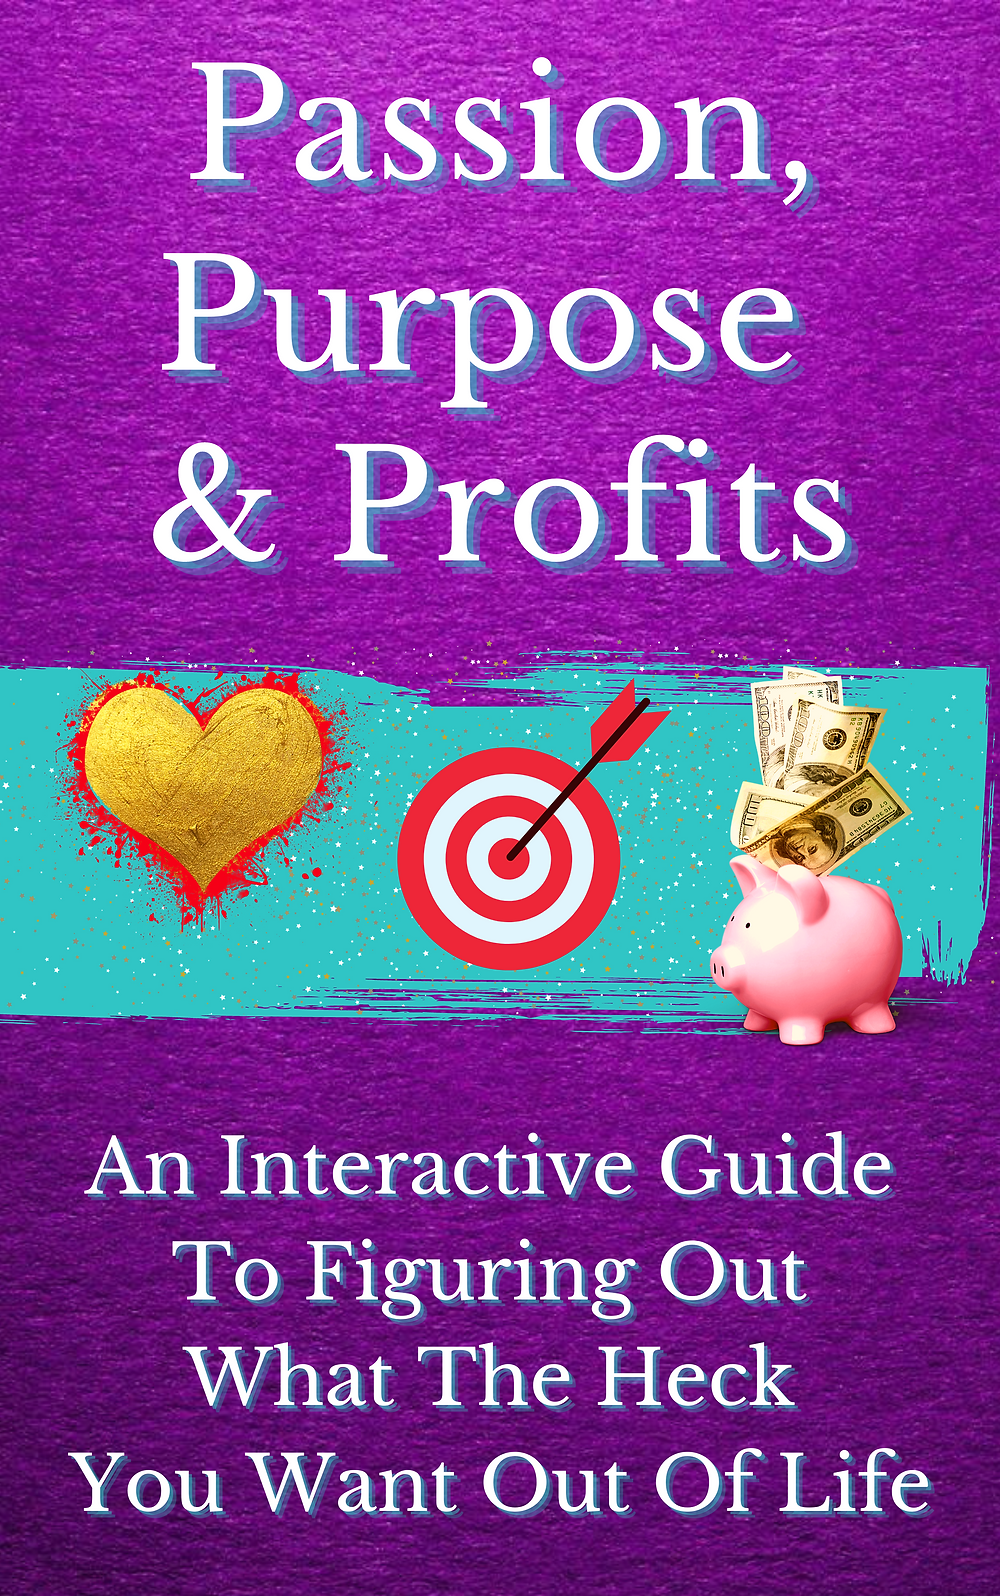 Passion, Purpose, & Profits: An Interactive Guide to Figuring Out What the Heck You Want Out of Life